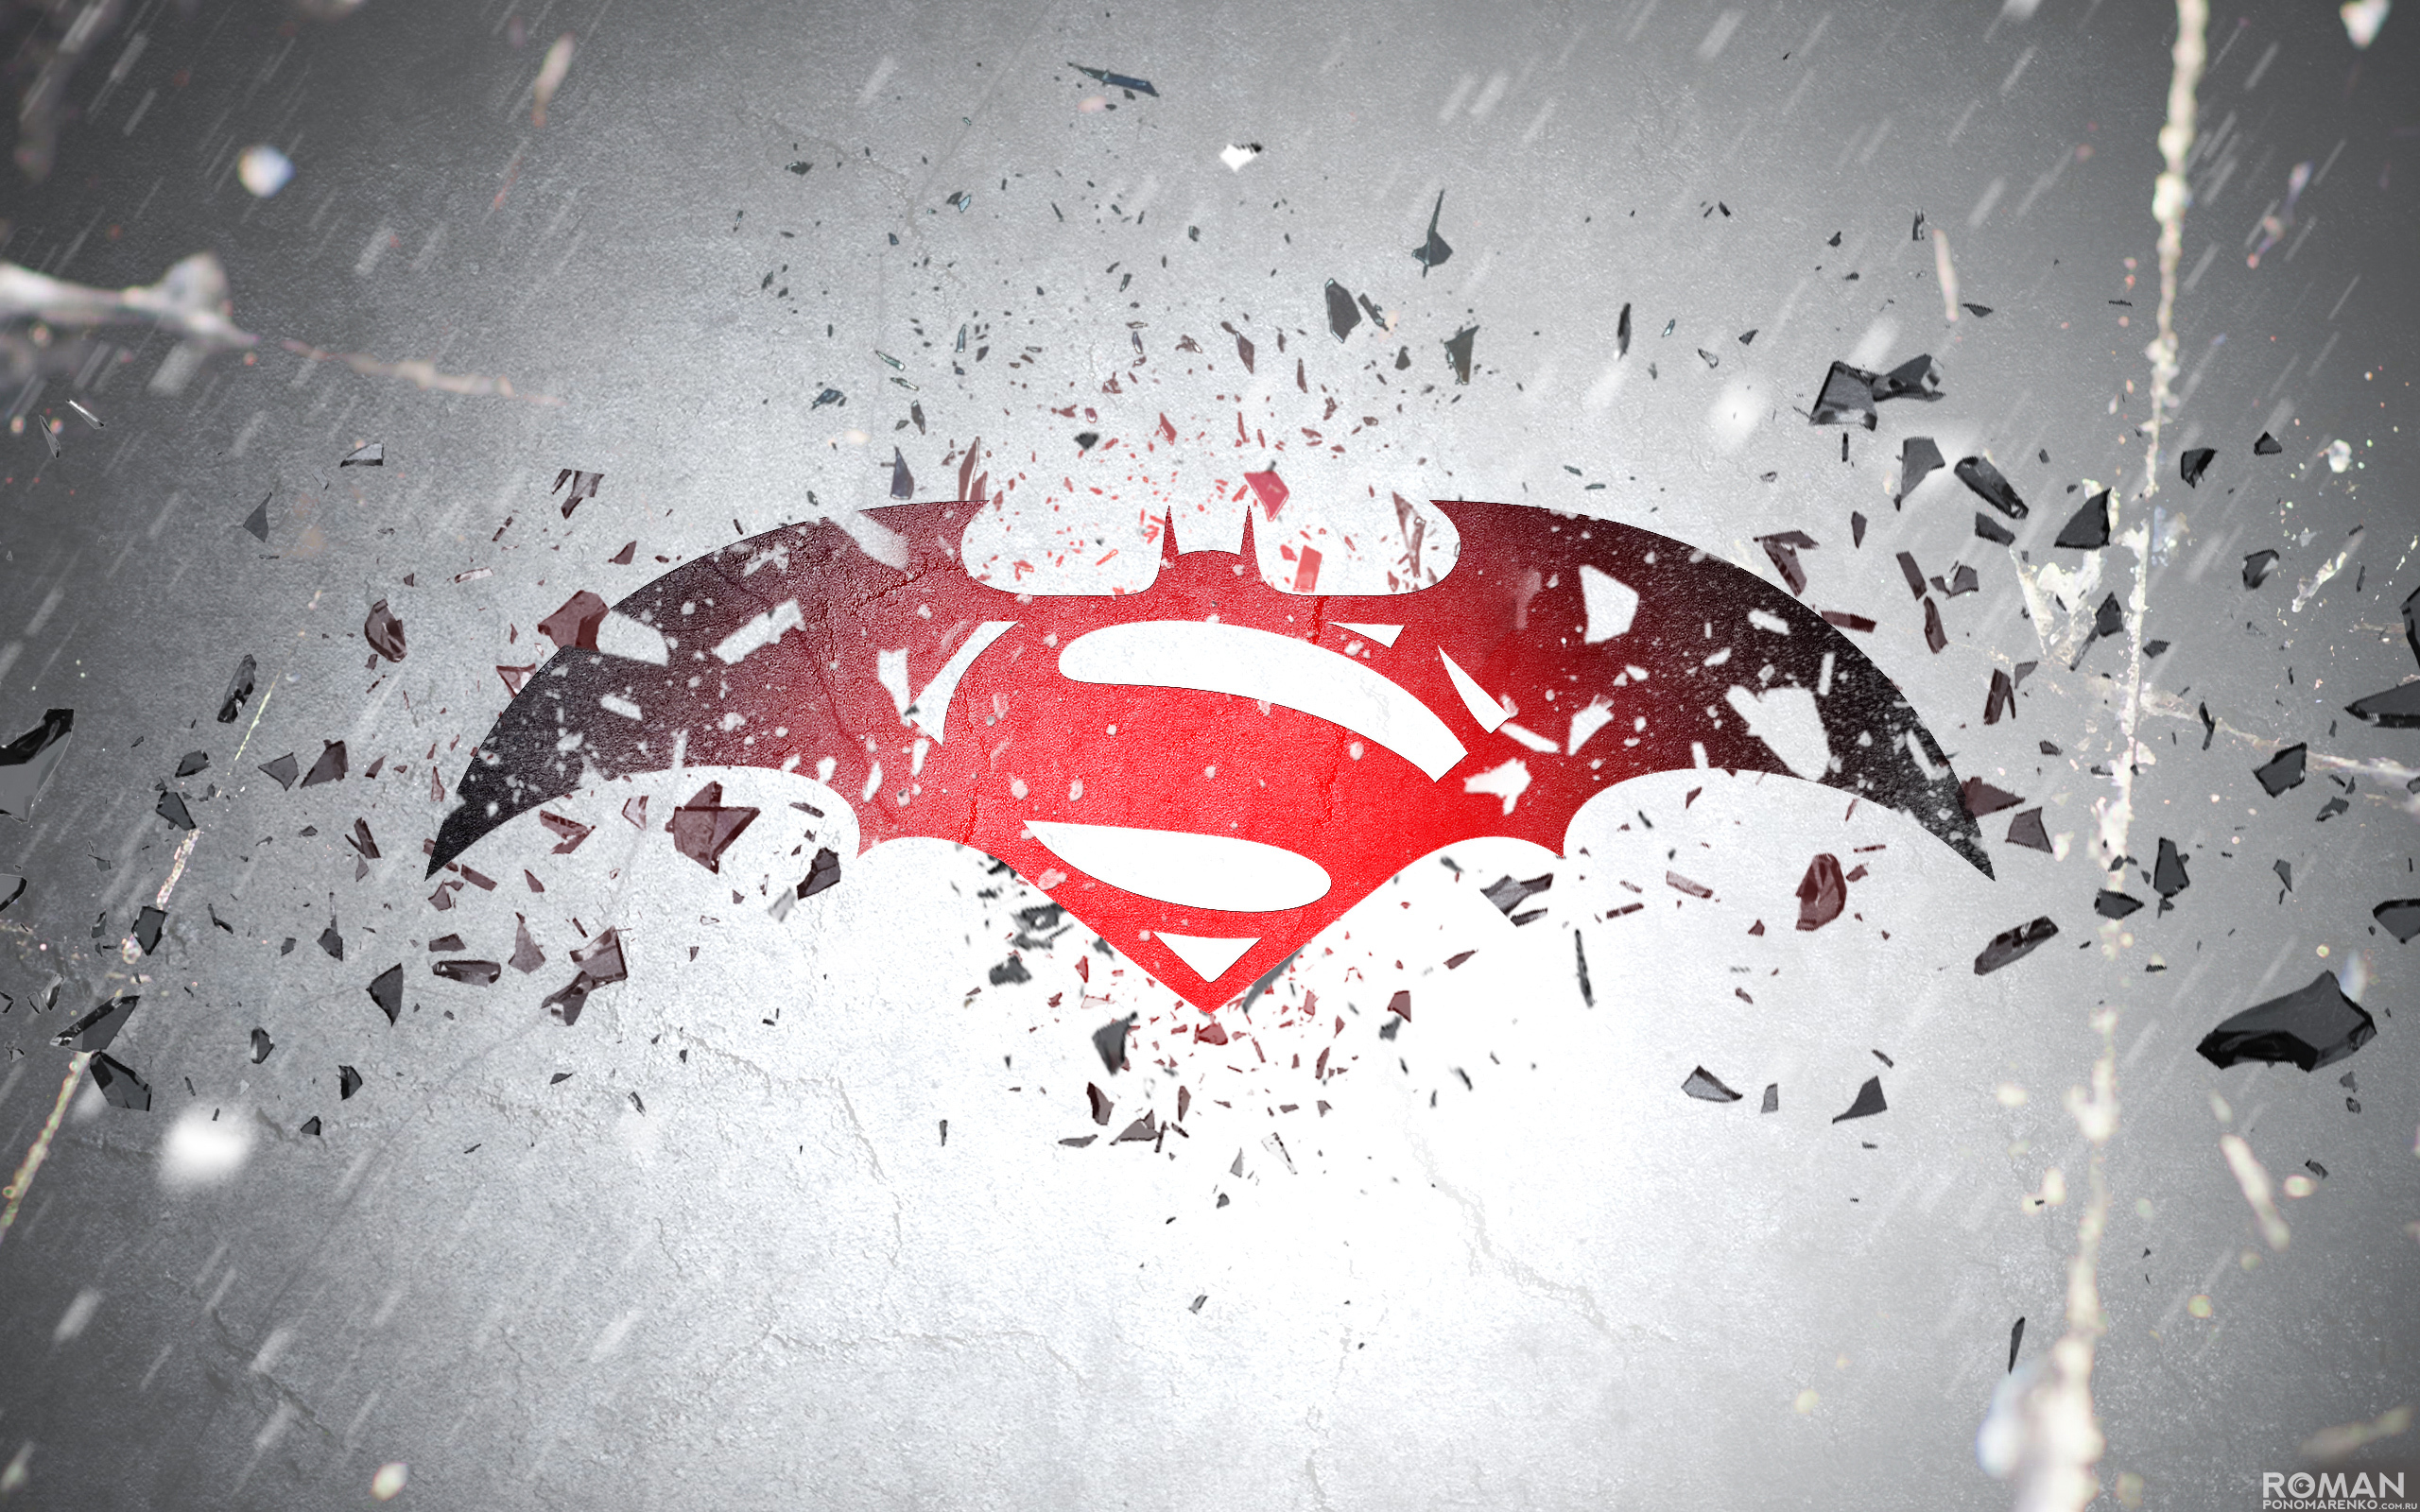 Download Batman V Superman Logo HD Wallpaper 6800 Full Size 2560x1600